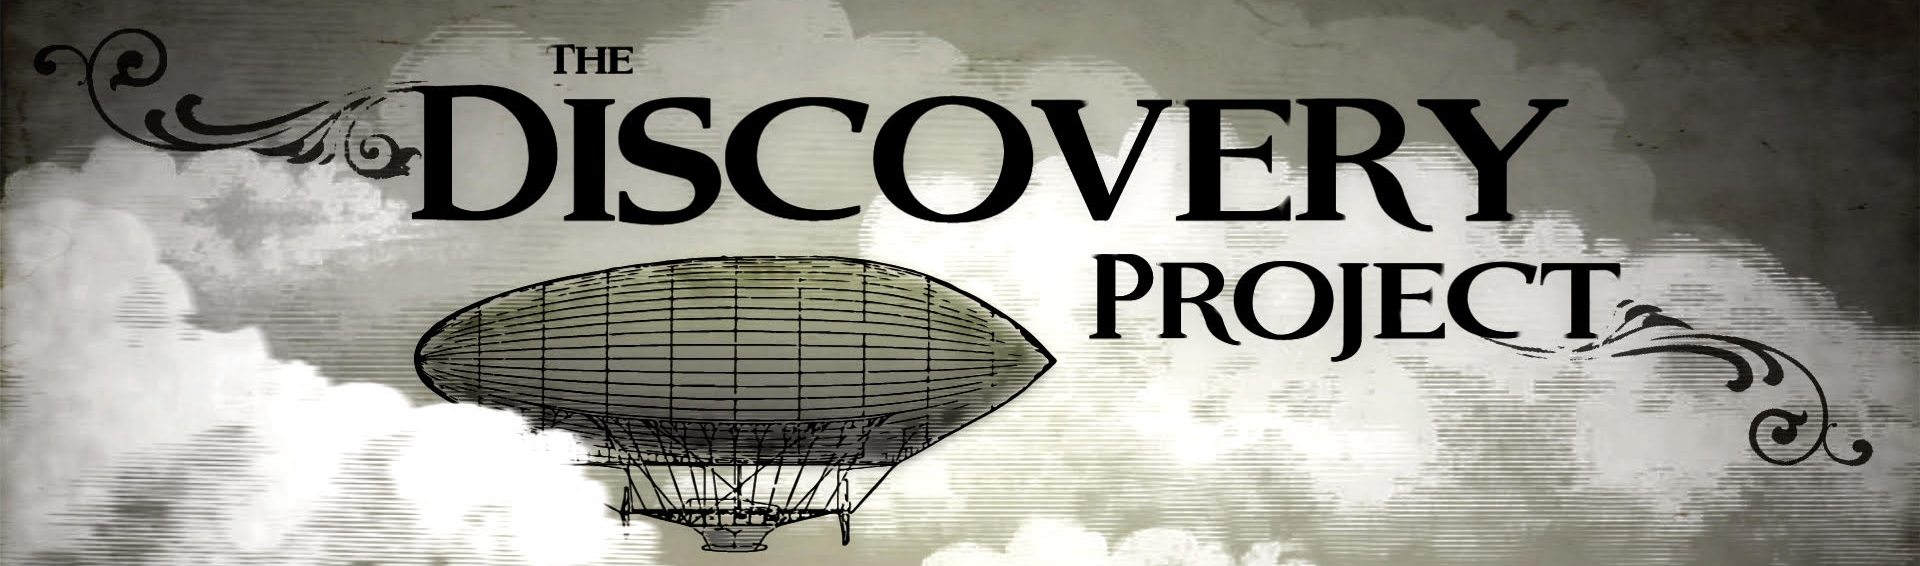 TheDiscoveryProject.jpg